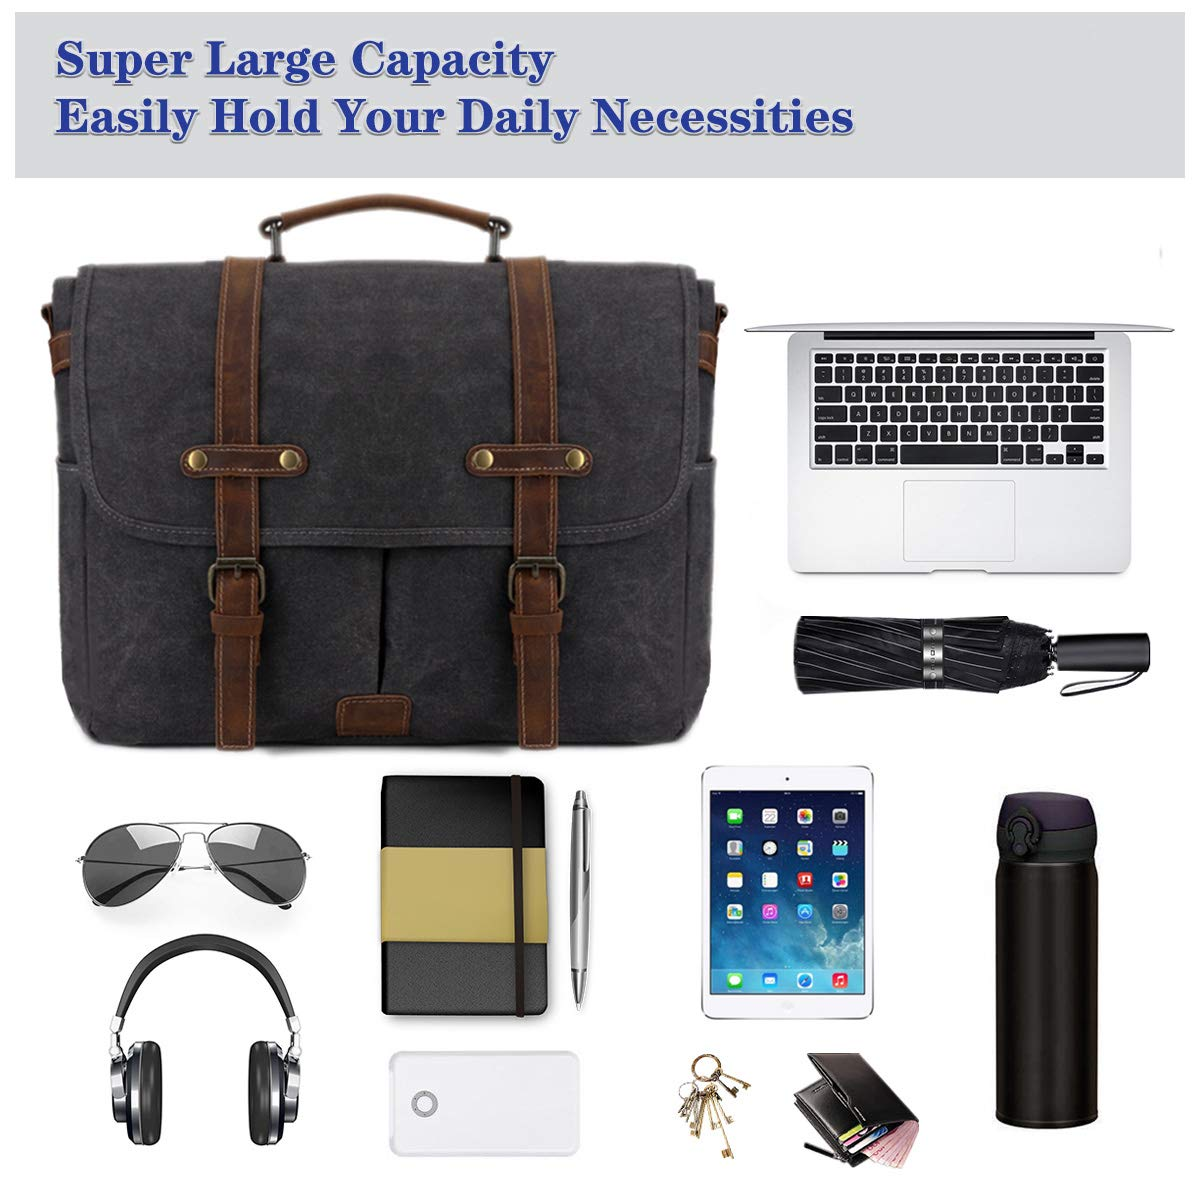 SOAEON Mens Messenger Bag,Laptop Bag 15.6 inch,Waterproof Vintage Canvas Briefcase, Leather Computer Bag for Business&School Travel Grey by SOAEON (Image #4)